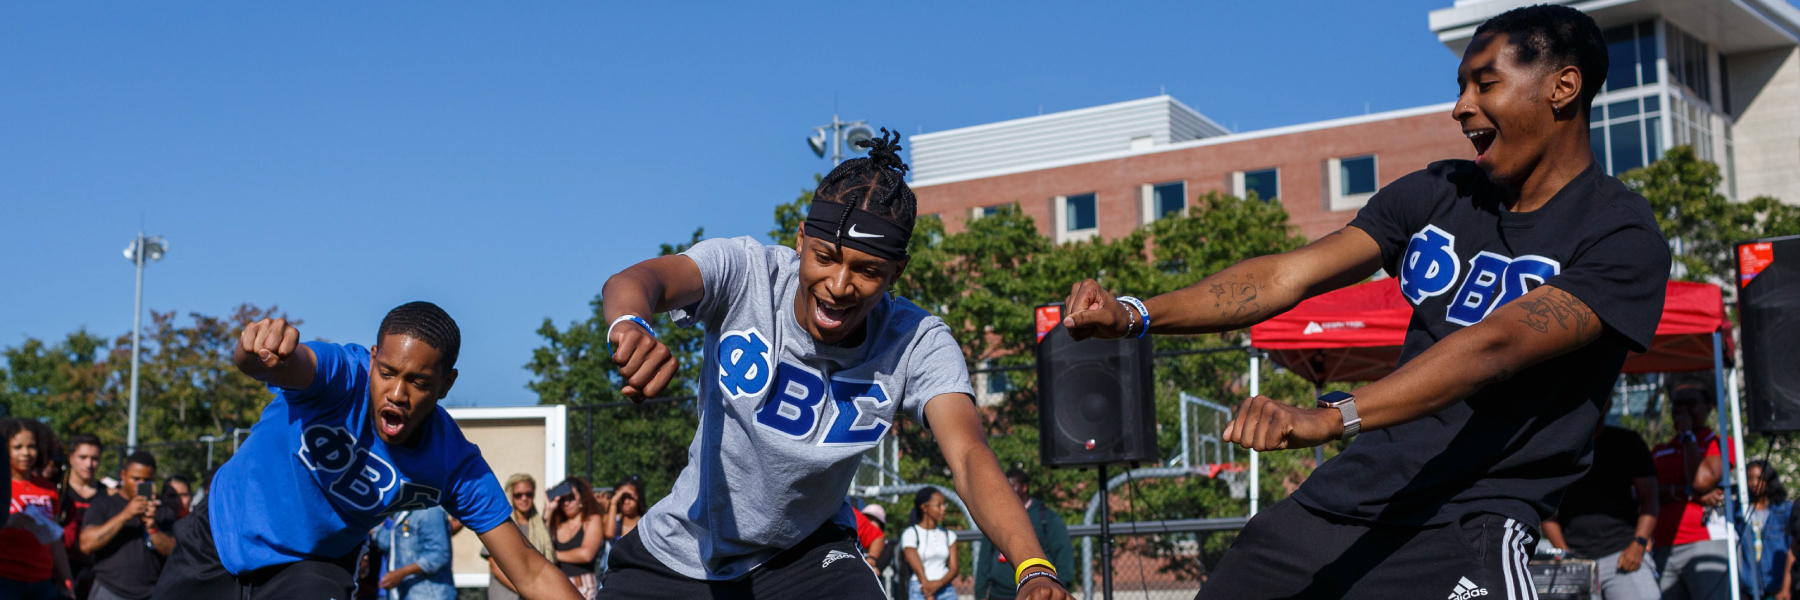 Members of the Phi Beta Sigma Fraternity participate in a welcome back event outside North Hall hosted by IUPUI's Black Student Union